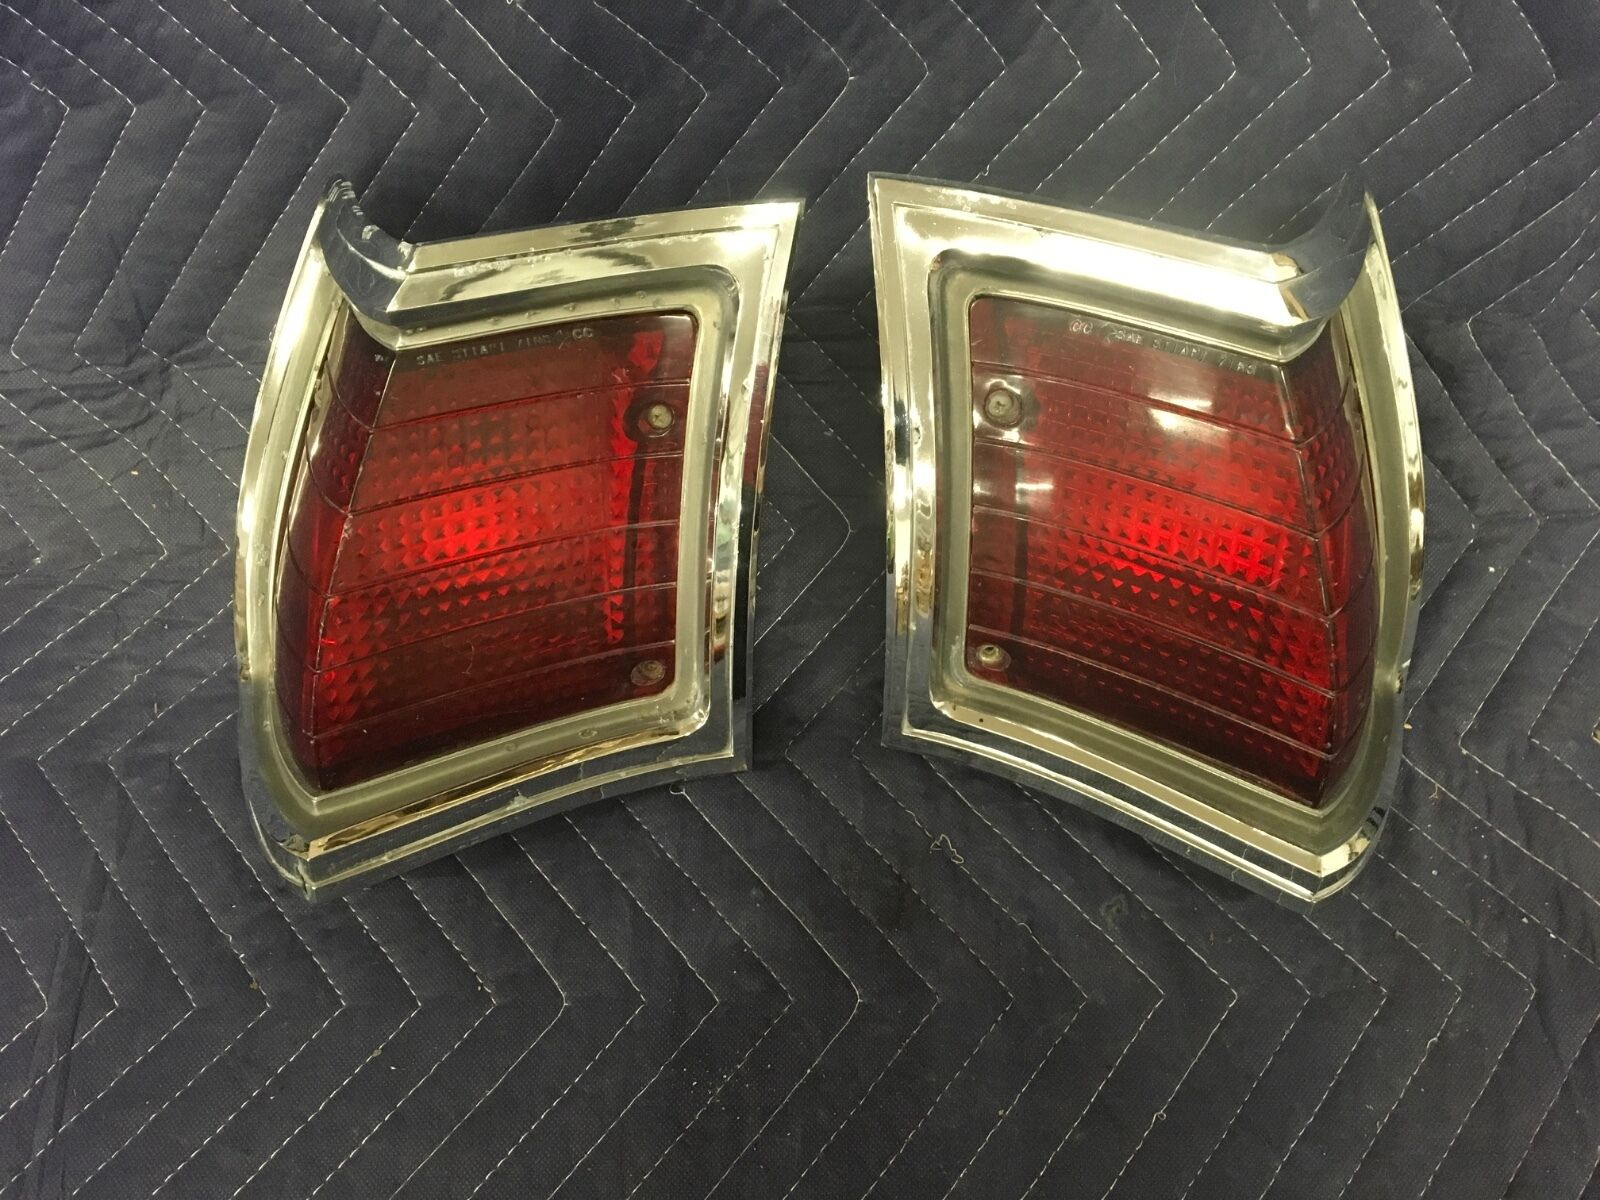 71 72 Plymouth Satellite Station Wagon Tail Lights Gtx 1 14959 1973 Of 1only Available